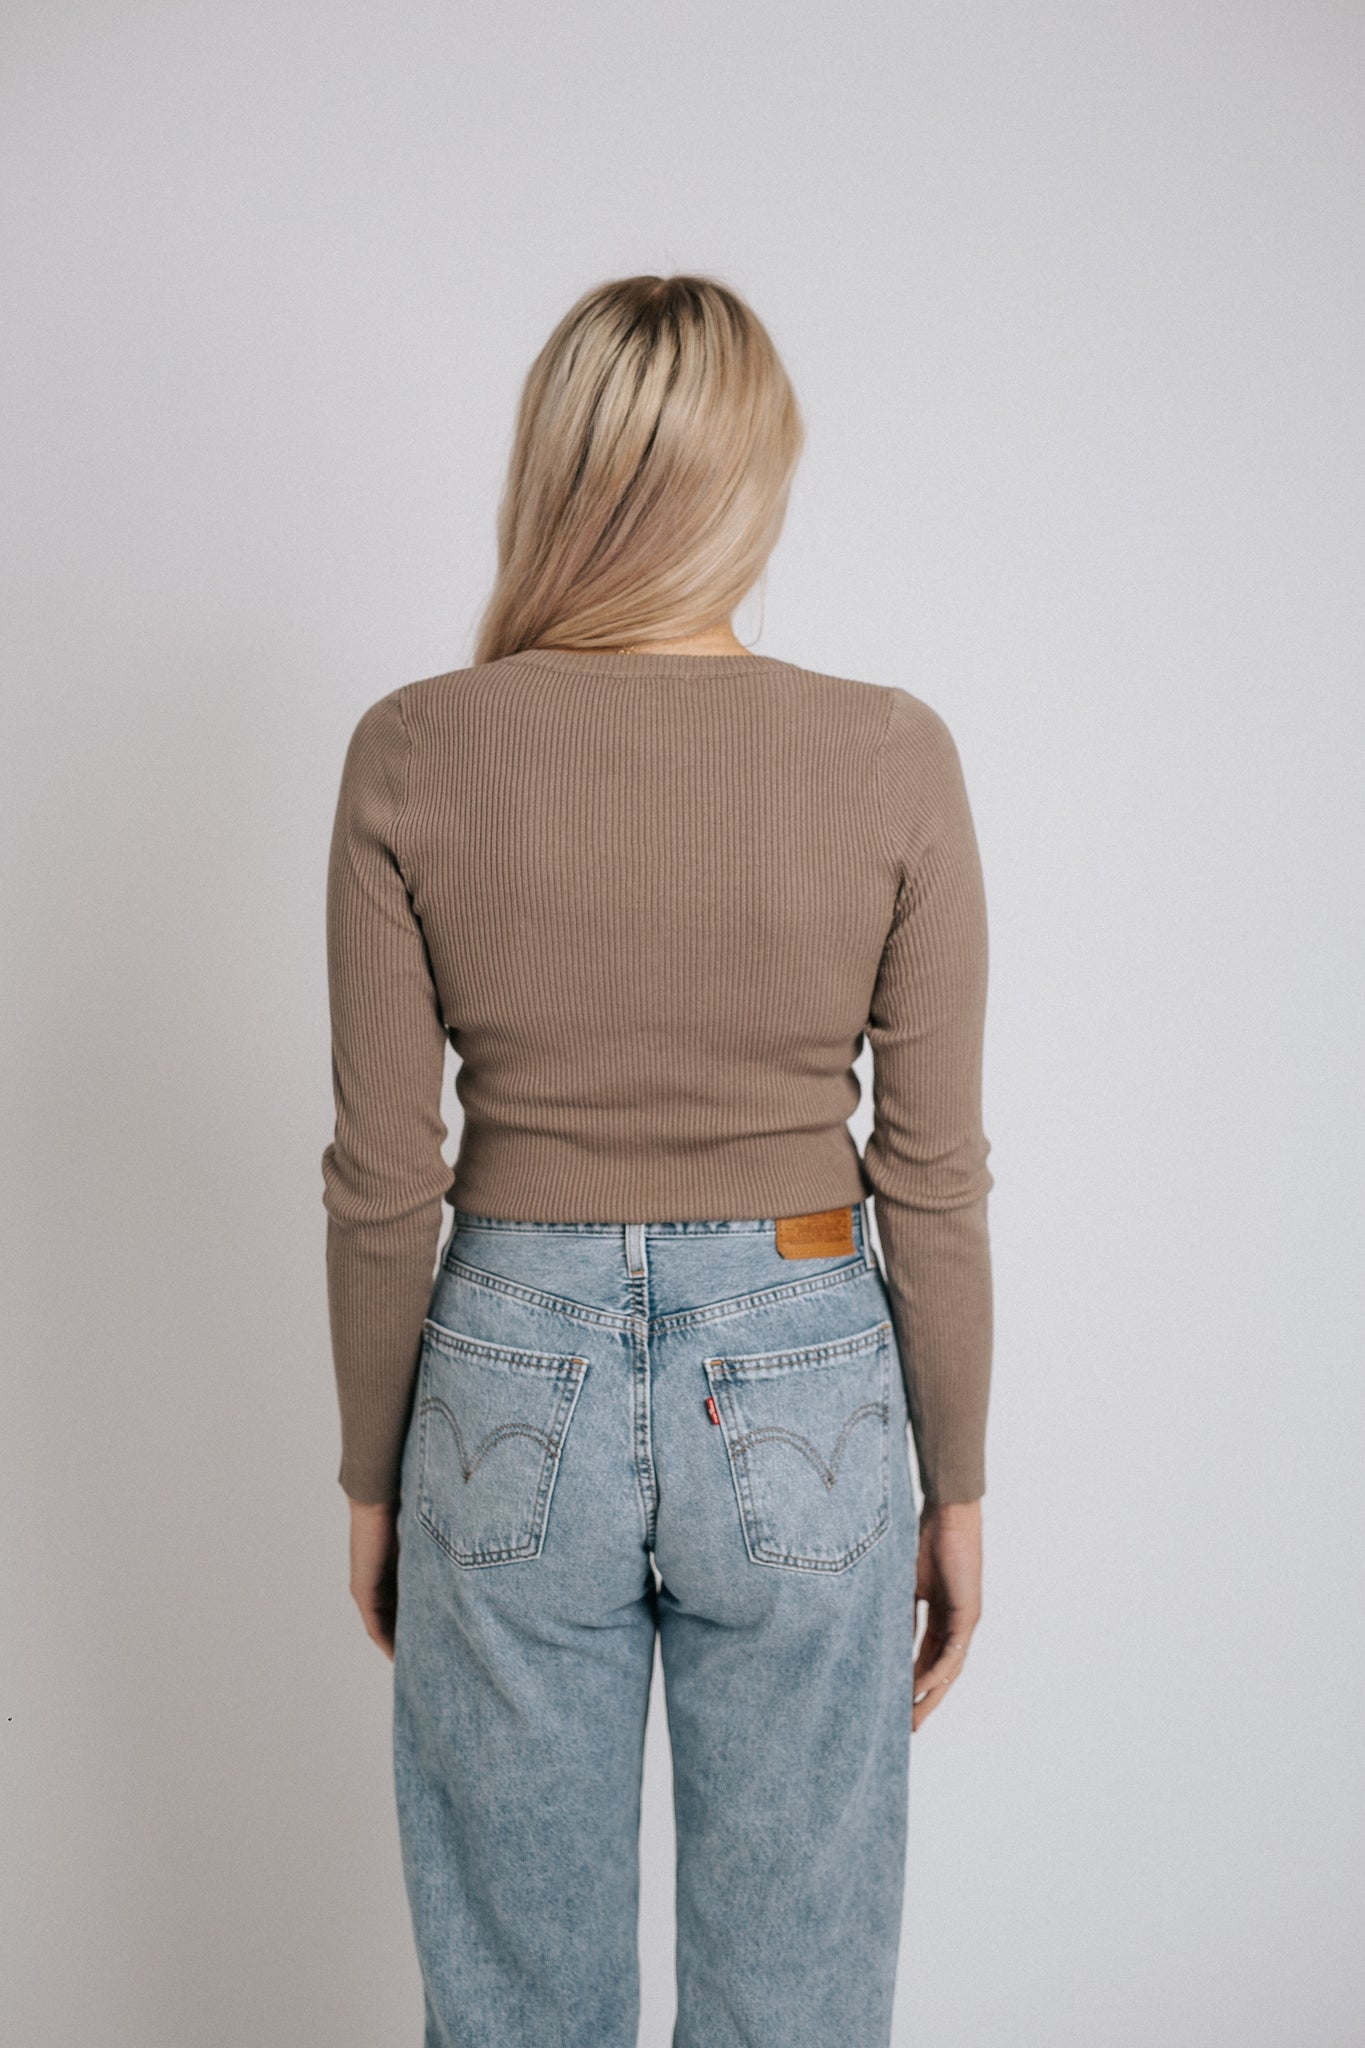 The Diversion Top in Taupe